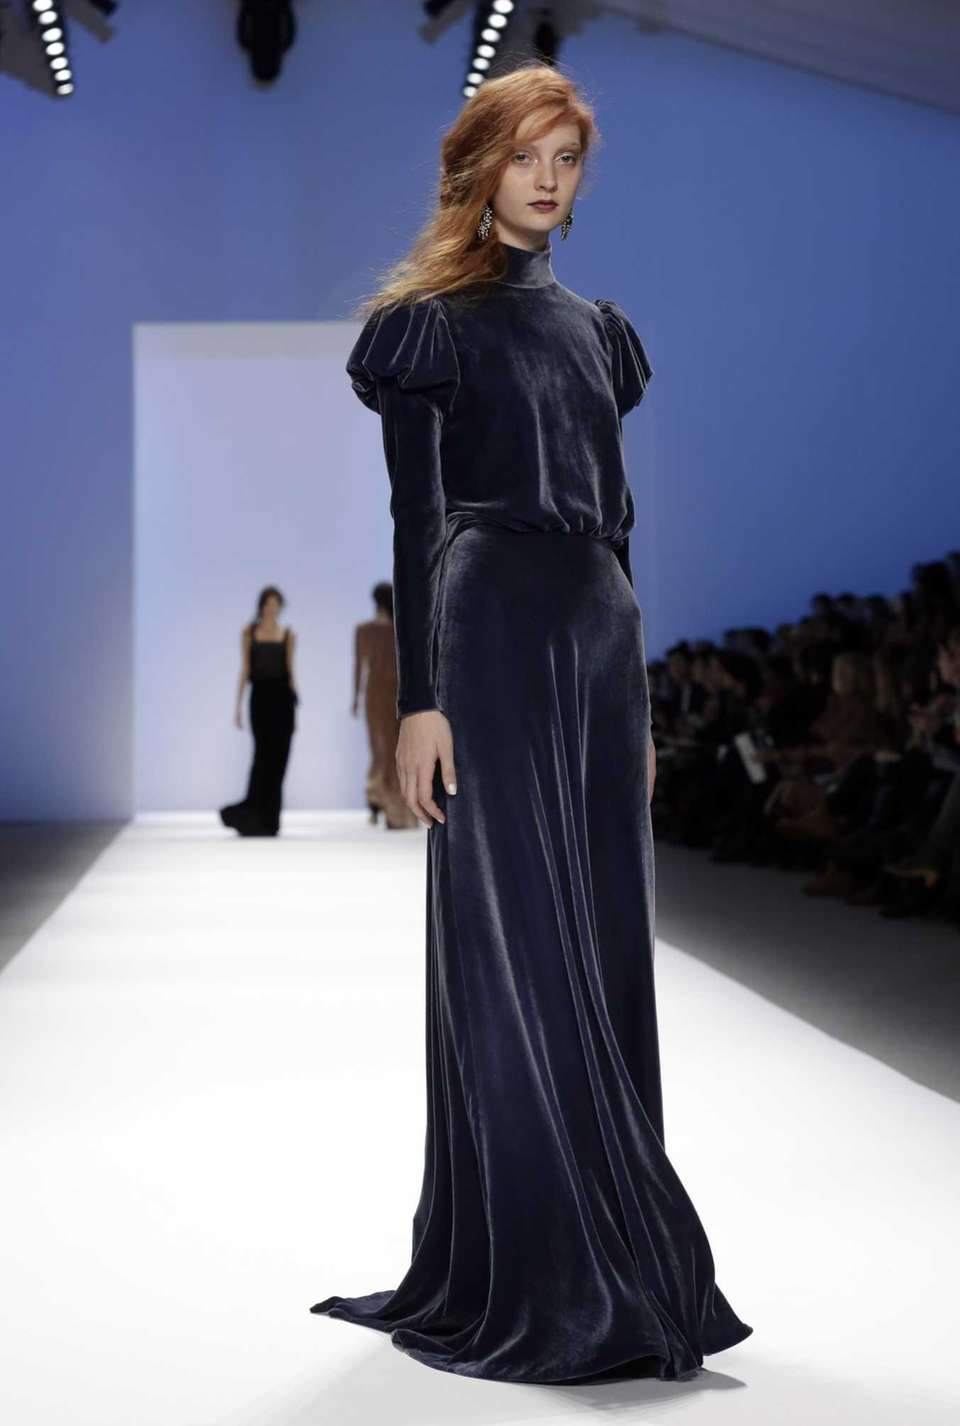 The Tadashi Shoji Fall 2013 collection on the